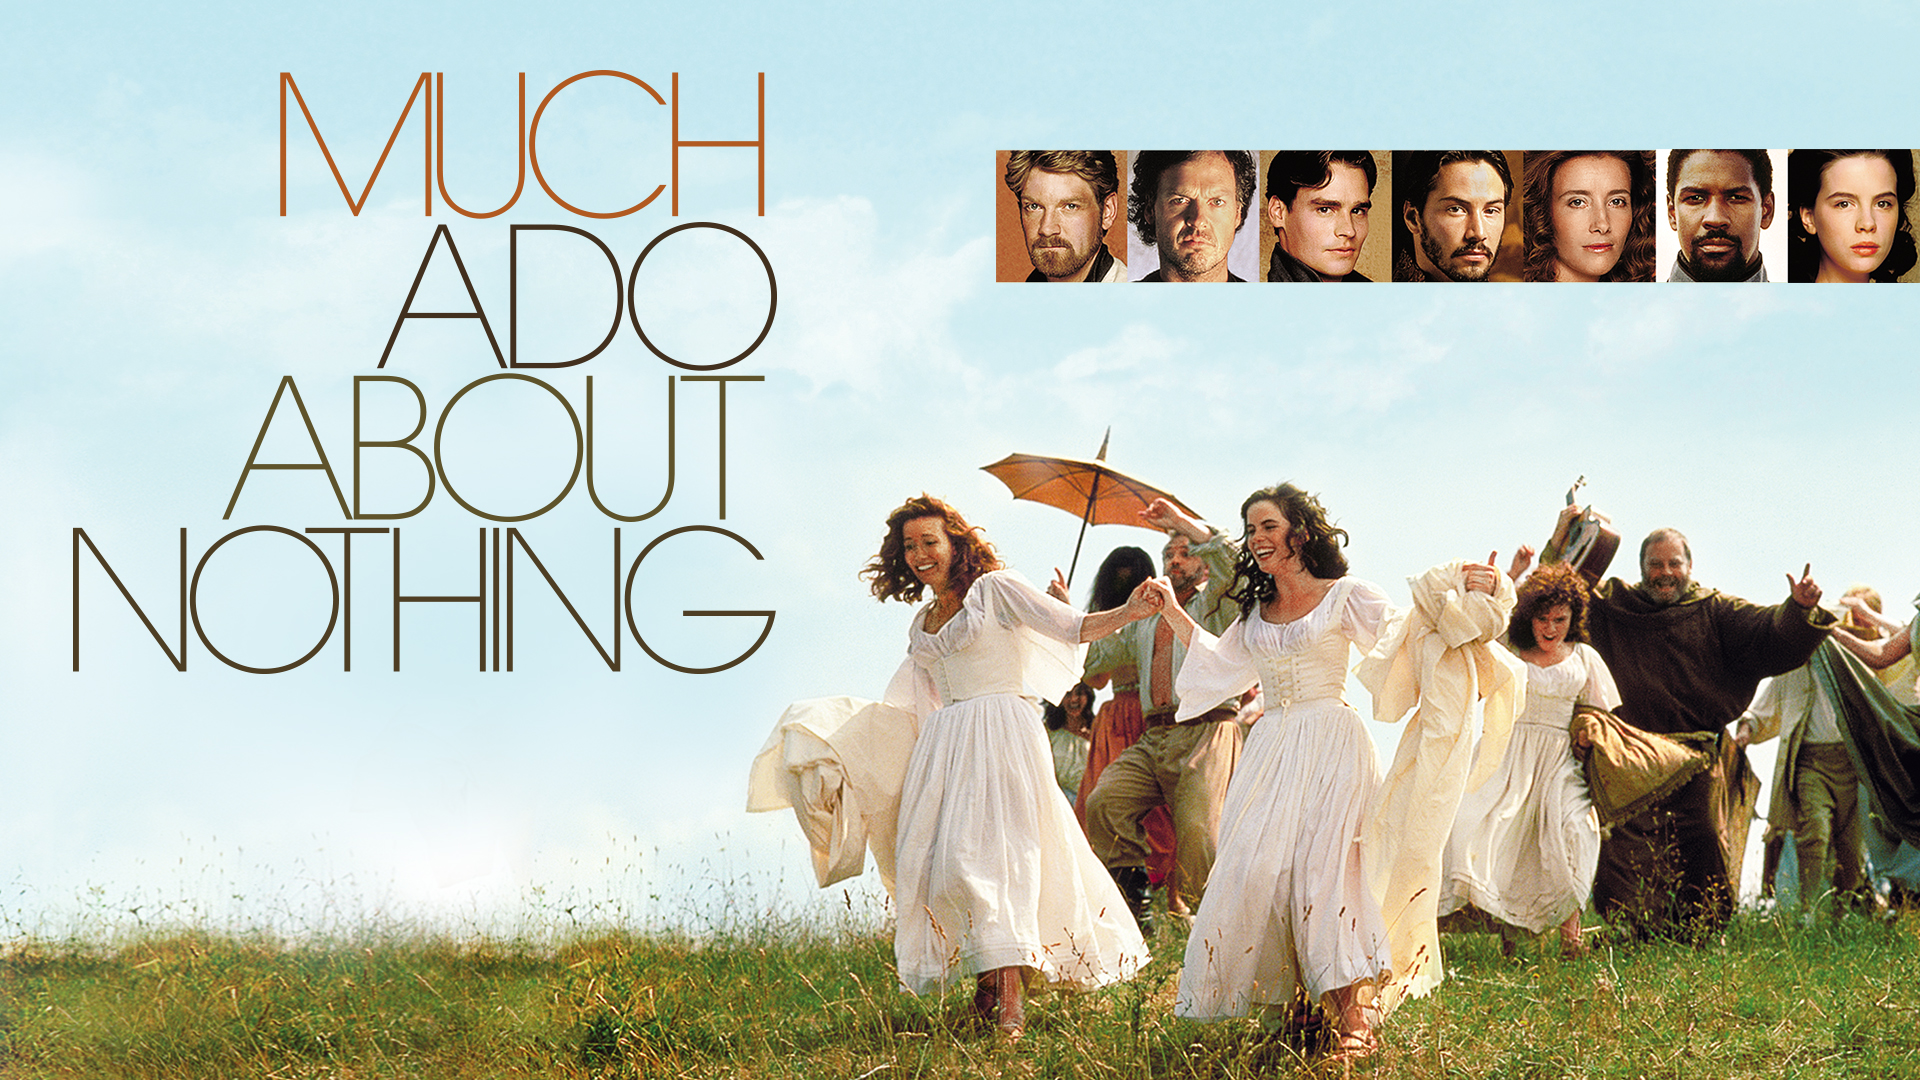 Much Ado About Nothing   1993   Emma Thompson   Kenneth